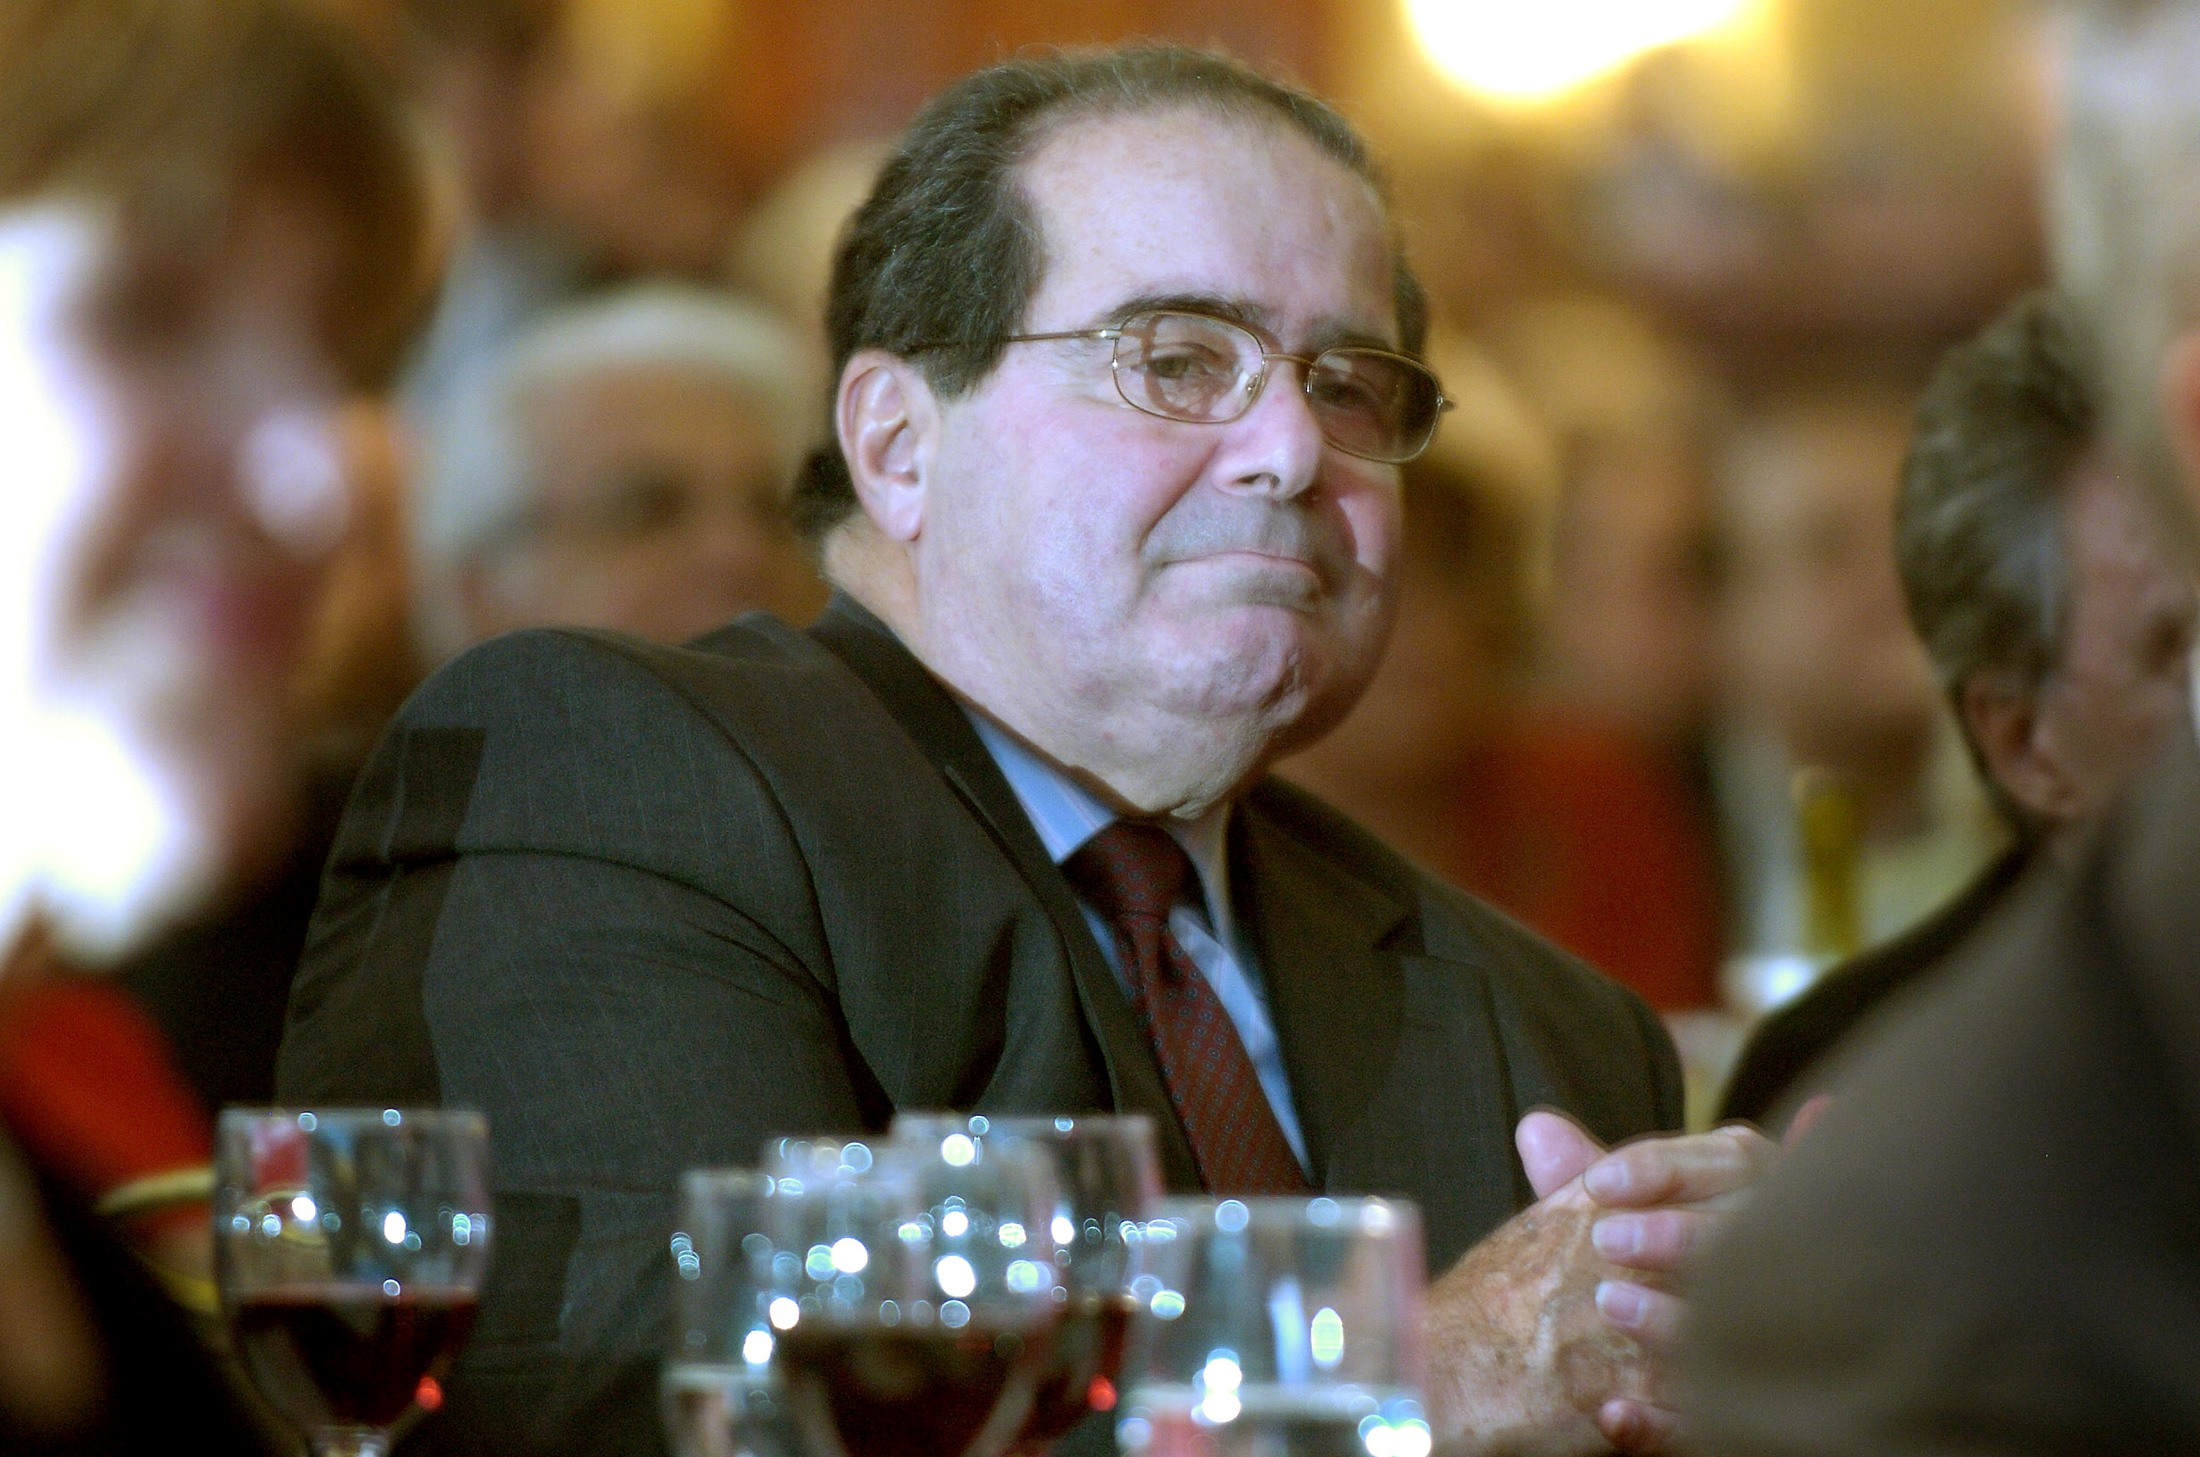 U.S. Supreme Court Justice Antonin Scalia sits in the audience at a National Italian American Foundation event in Washington, in this file photo taken October 20, 2006. Scalia, 79, has died, Texas Governor Greg Abbott said. Scalia, appointed to the top U.S. court in 1986 by President Ronald Reagan, was known for his strident conservative views and theatrical flair in the courtroom.   REUTERS/Jonathan Ernst/Files